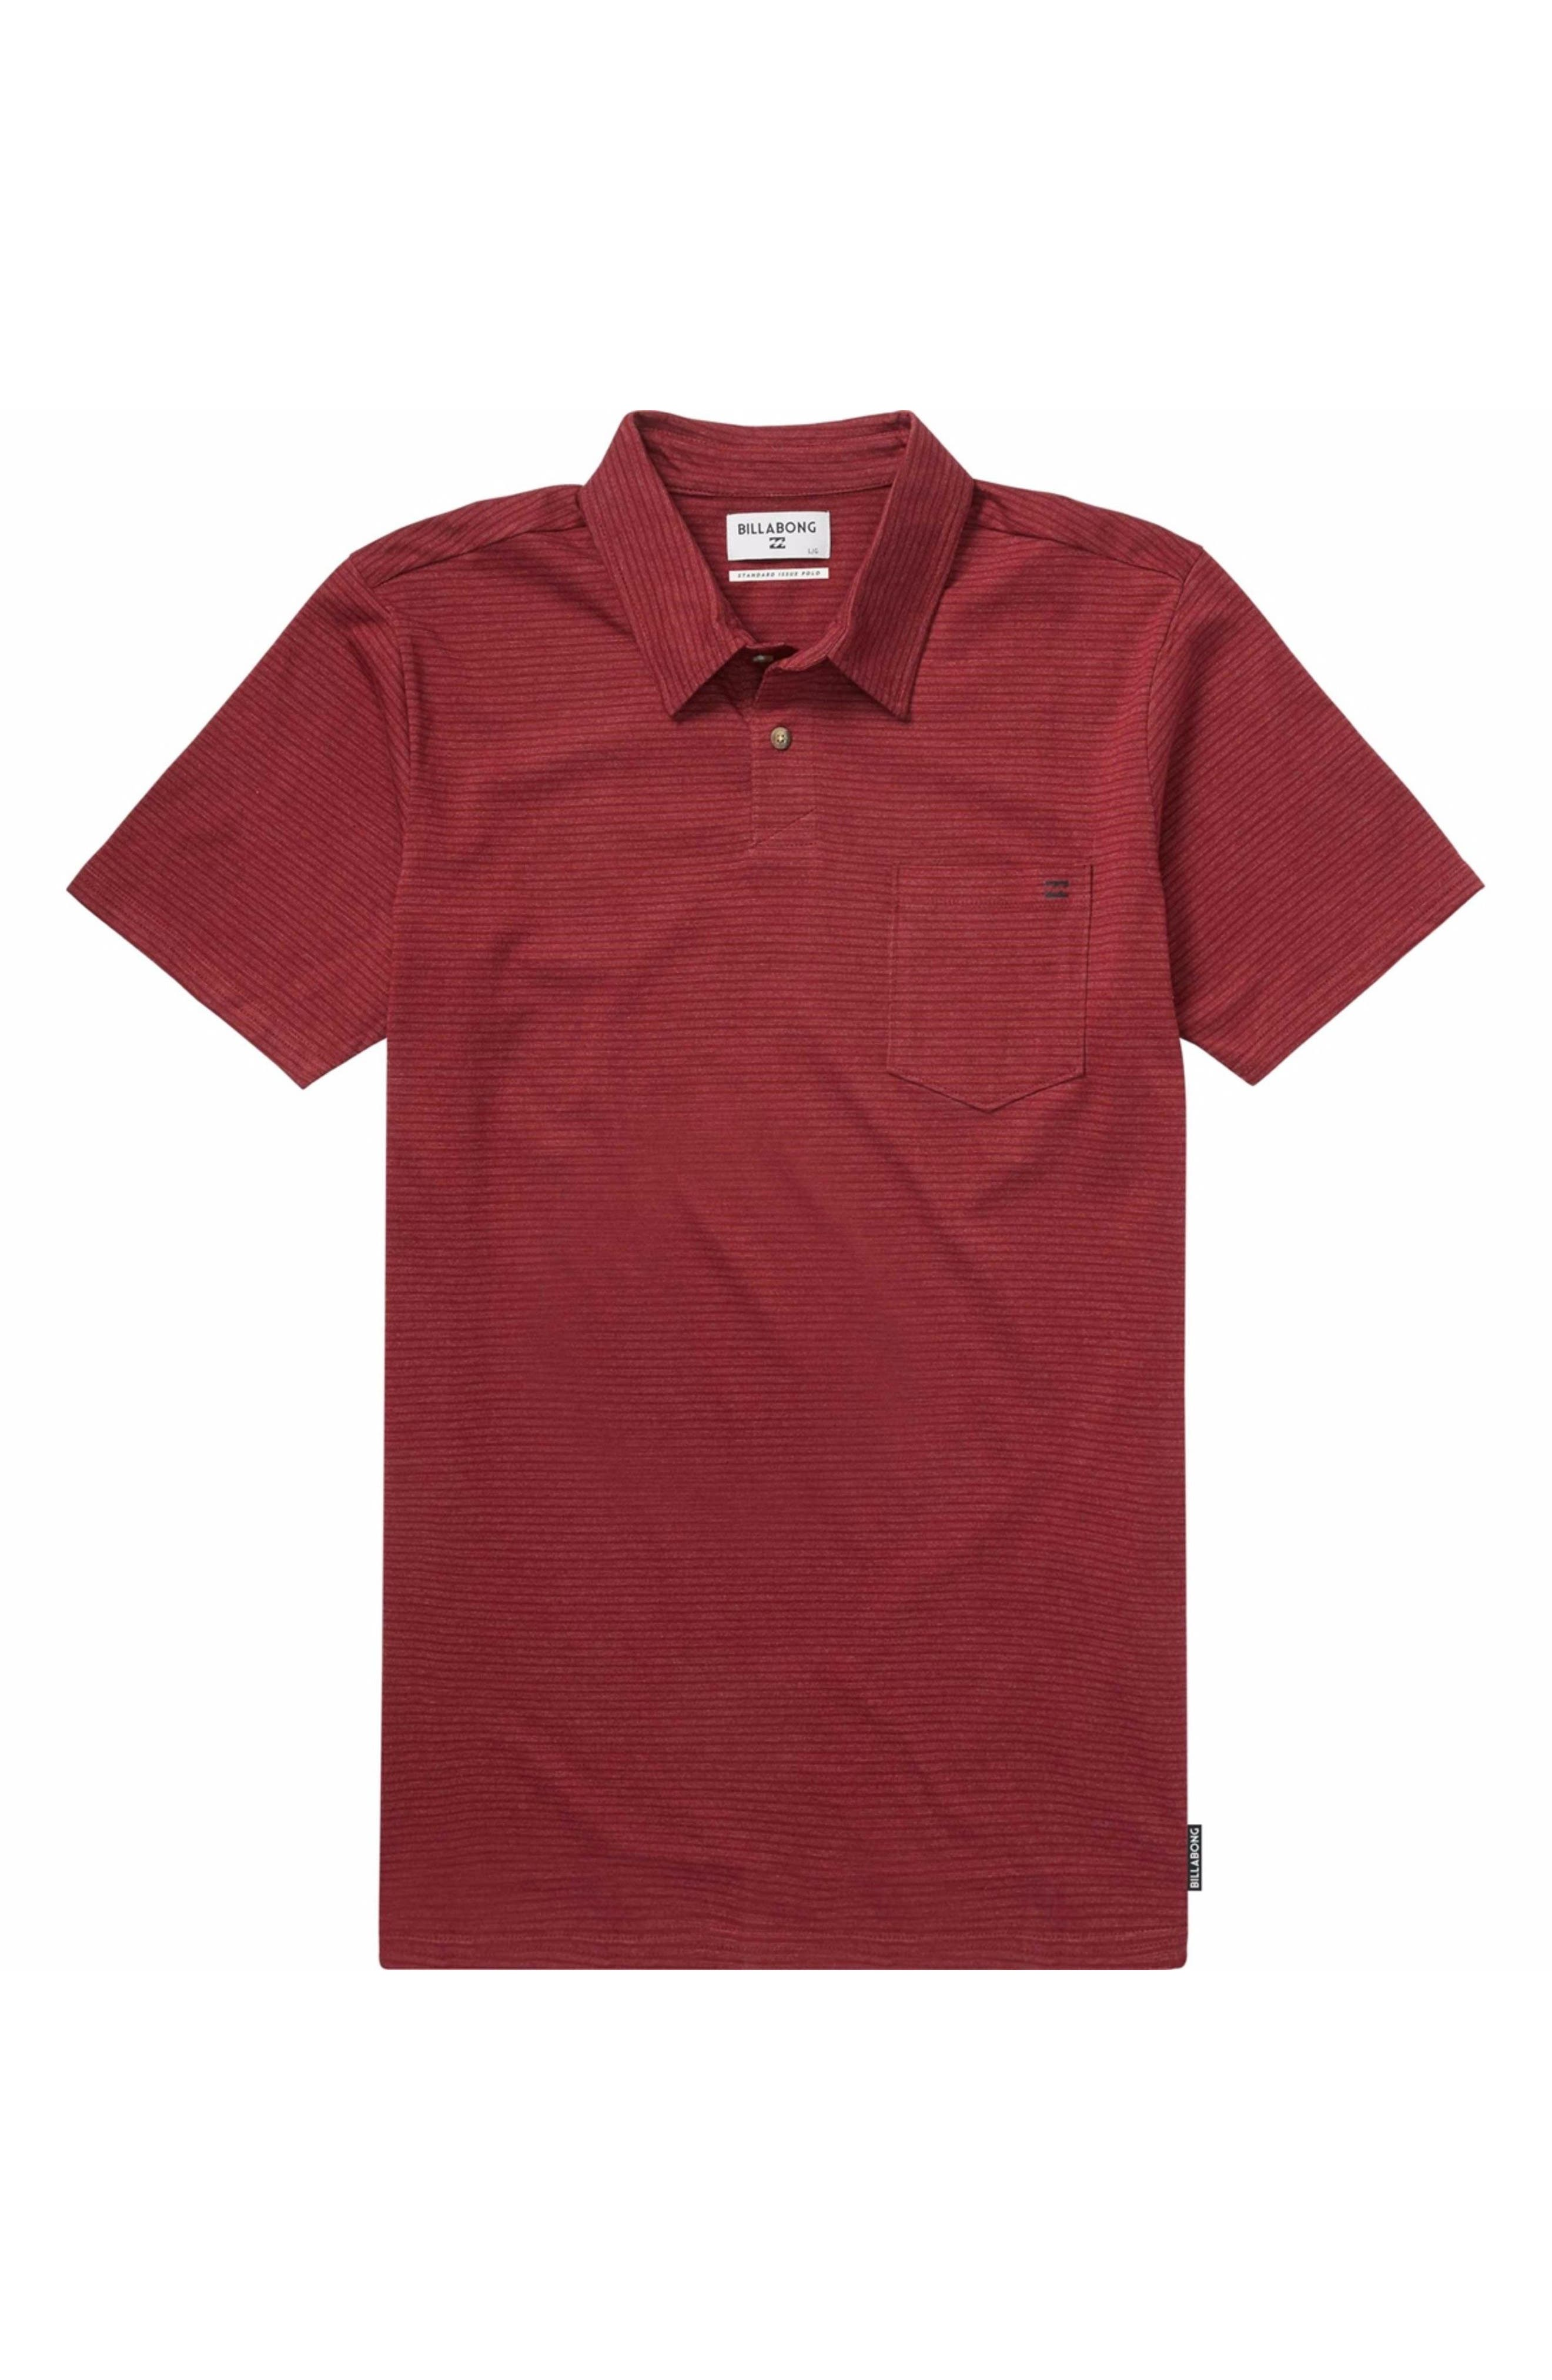 Main Image - Billabong Standard Issue Jersey Polo (Big Boys)